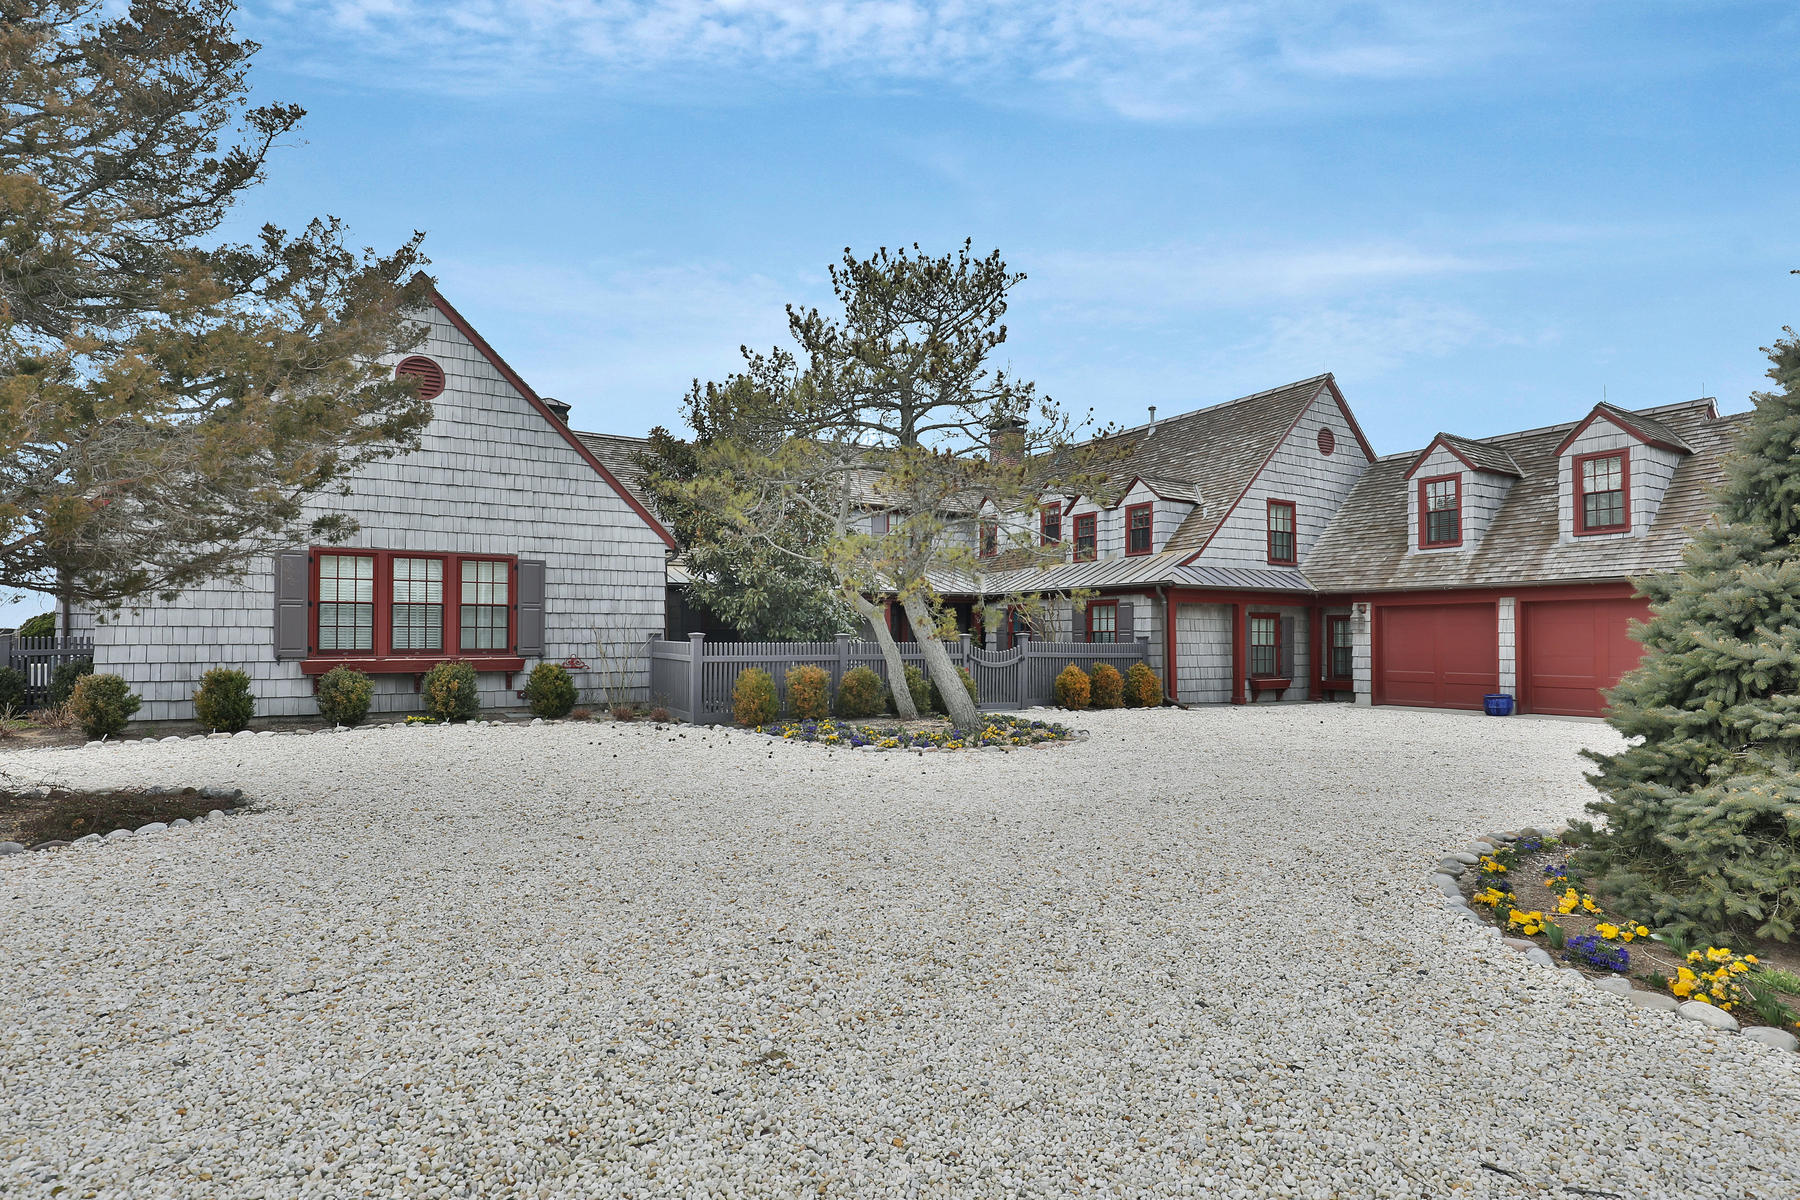 独户住宅 为 销售 在 Spectacular Home With Unobstructed Bay Views 1066 Barnegat Lane 洛金, 新泽西州, 08758 美国